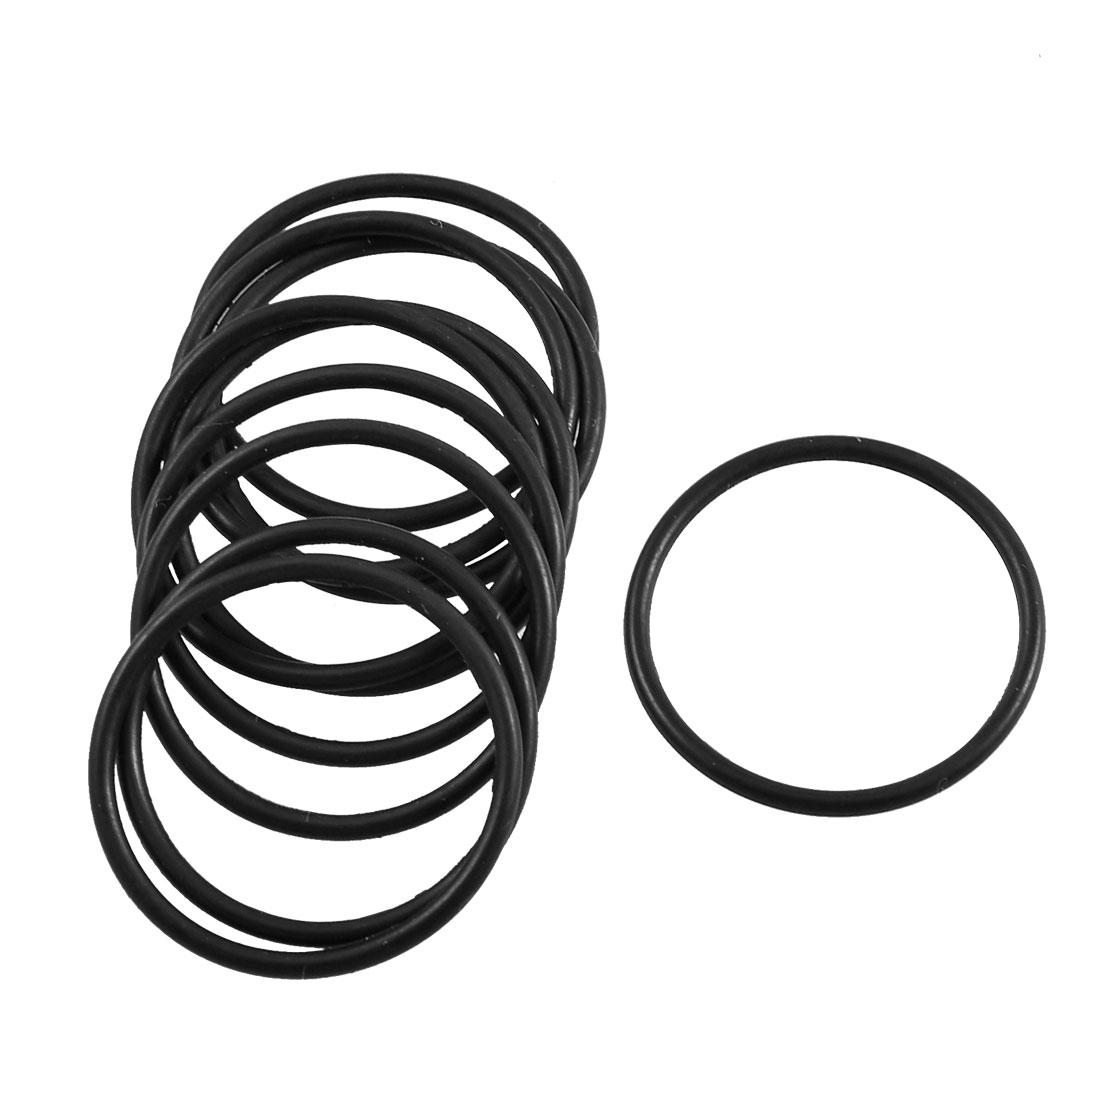 10 Pcs Black Oil Seal O Ring Sealing Gasket Washer 25mm x 1.8mm